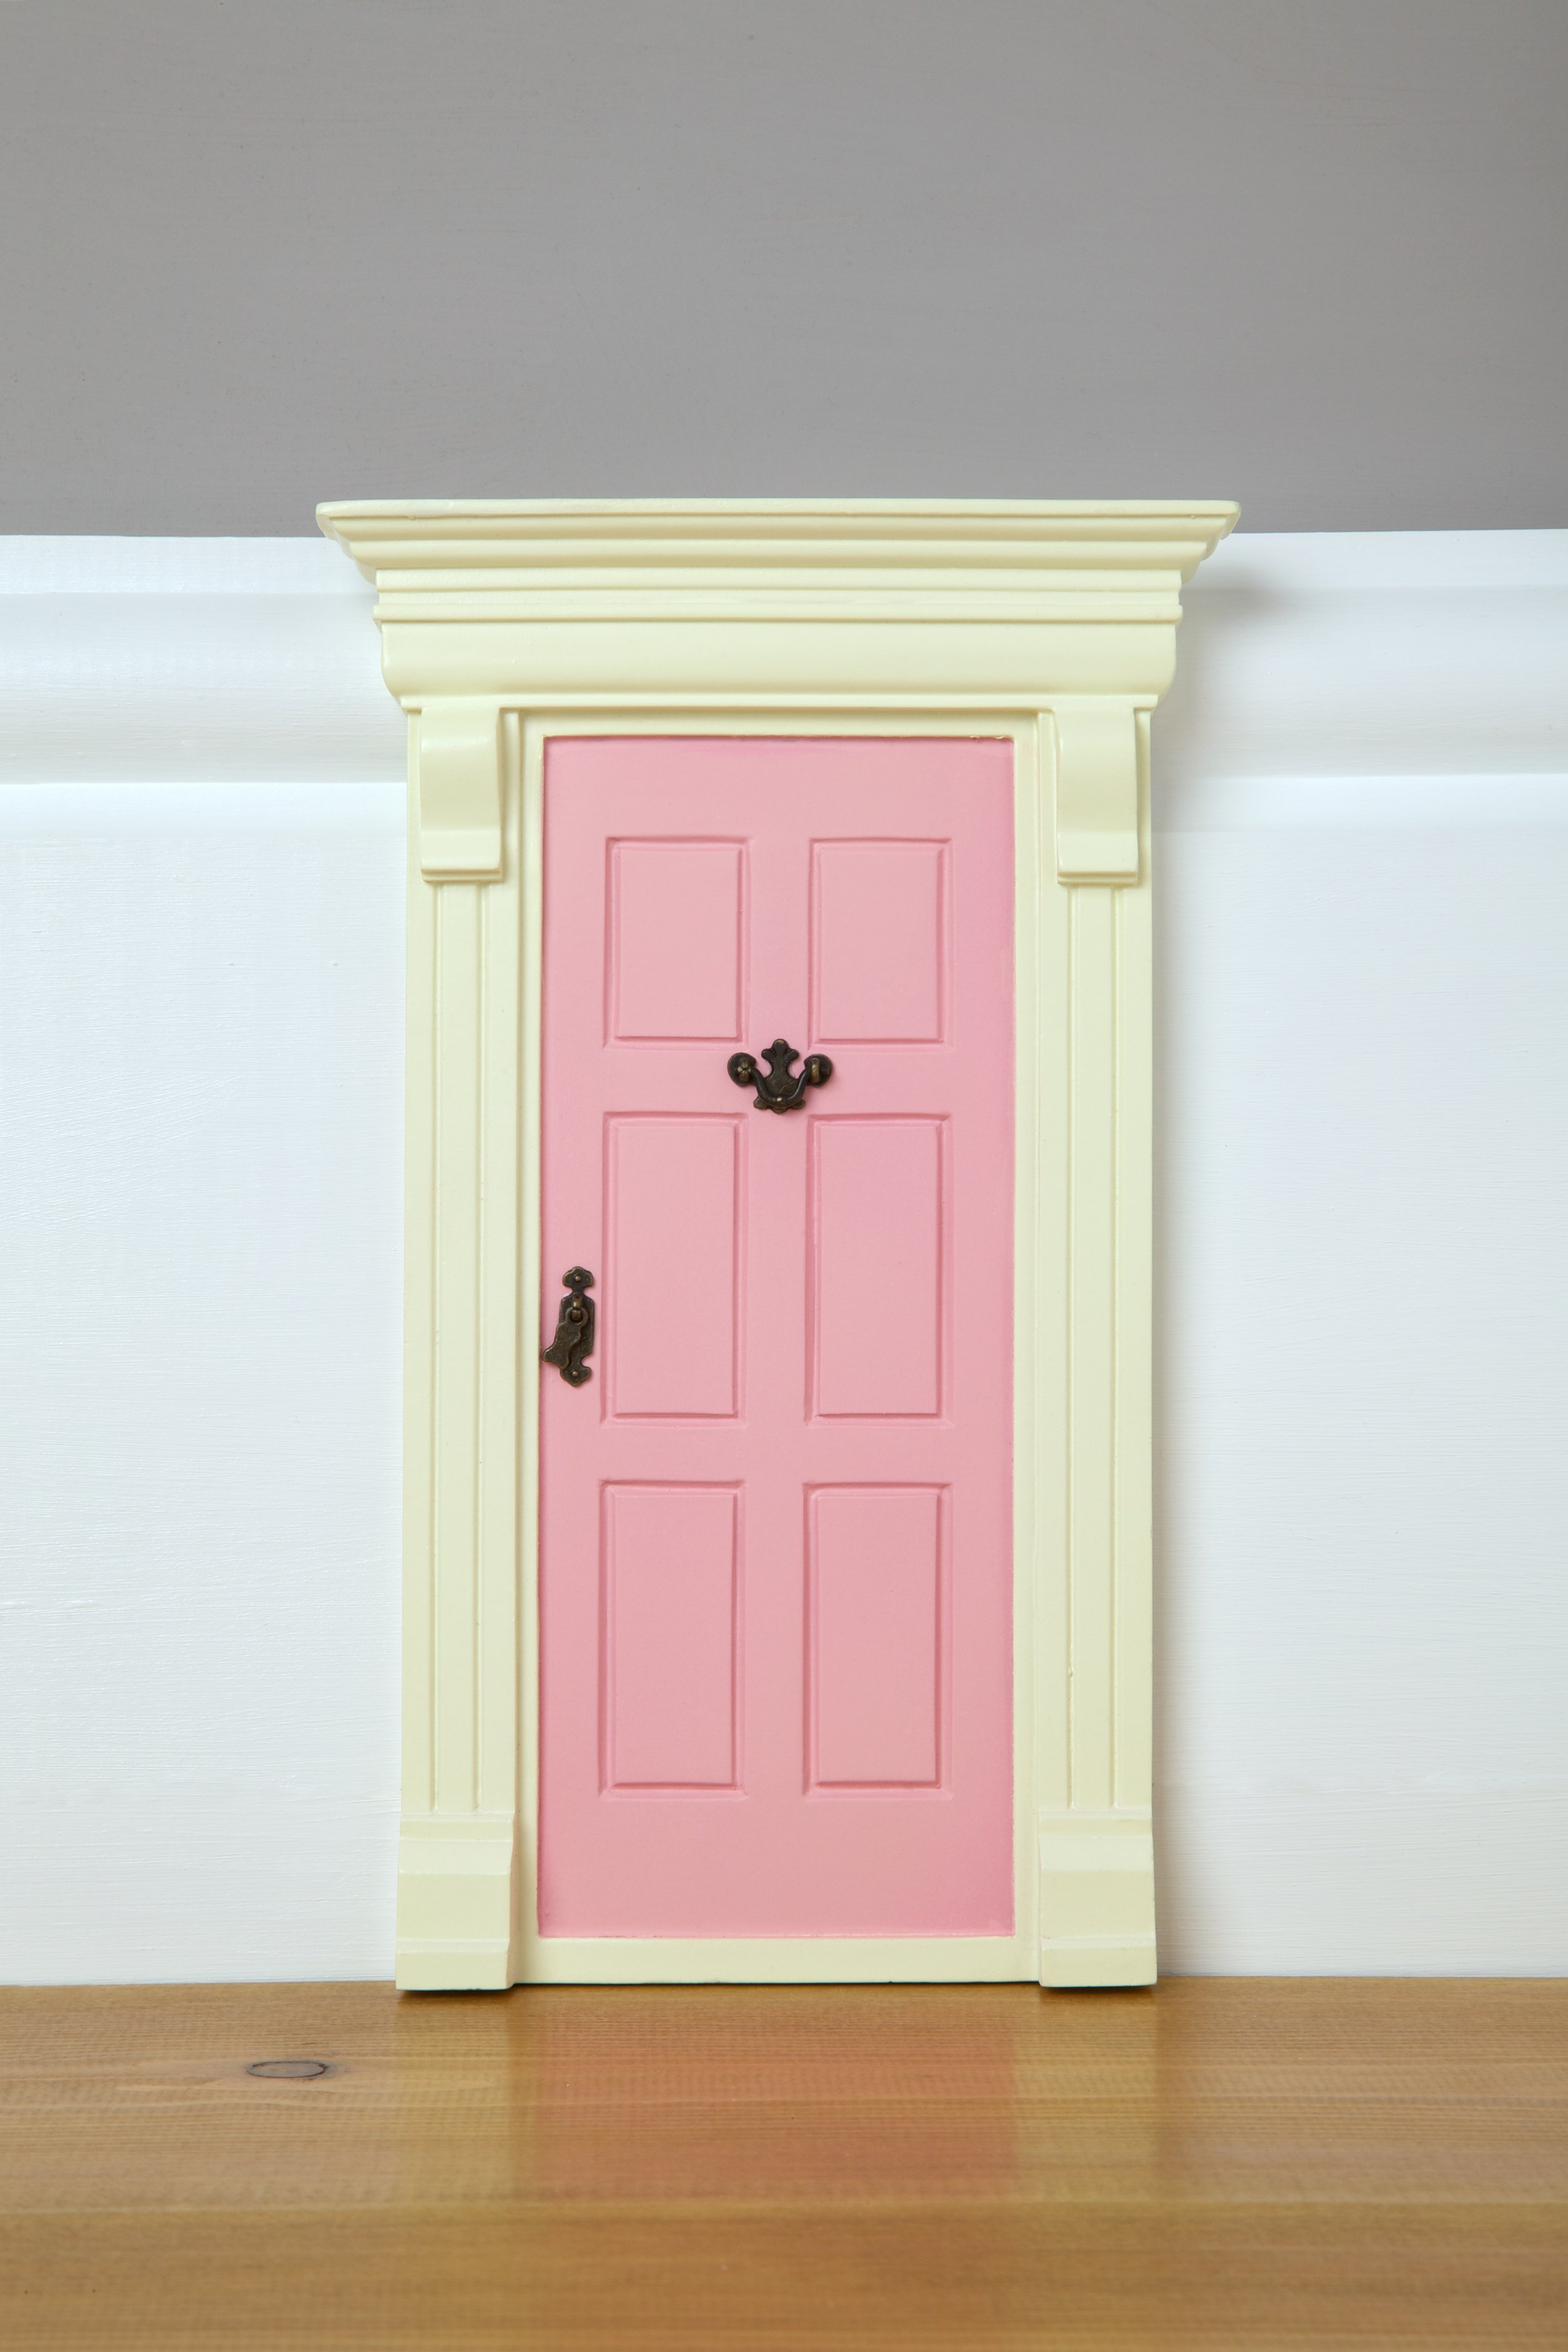 The Magic Door Store   Up to 50% off from Friday to Monday  Plus extra 10% with code - Magic10